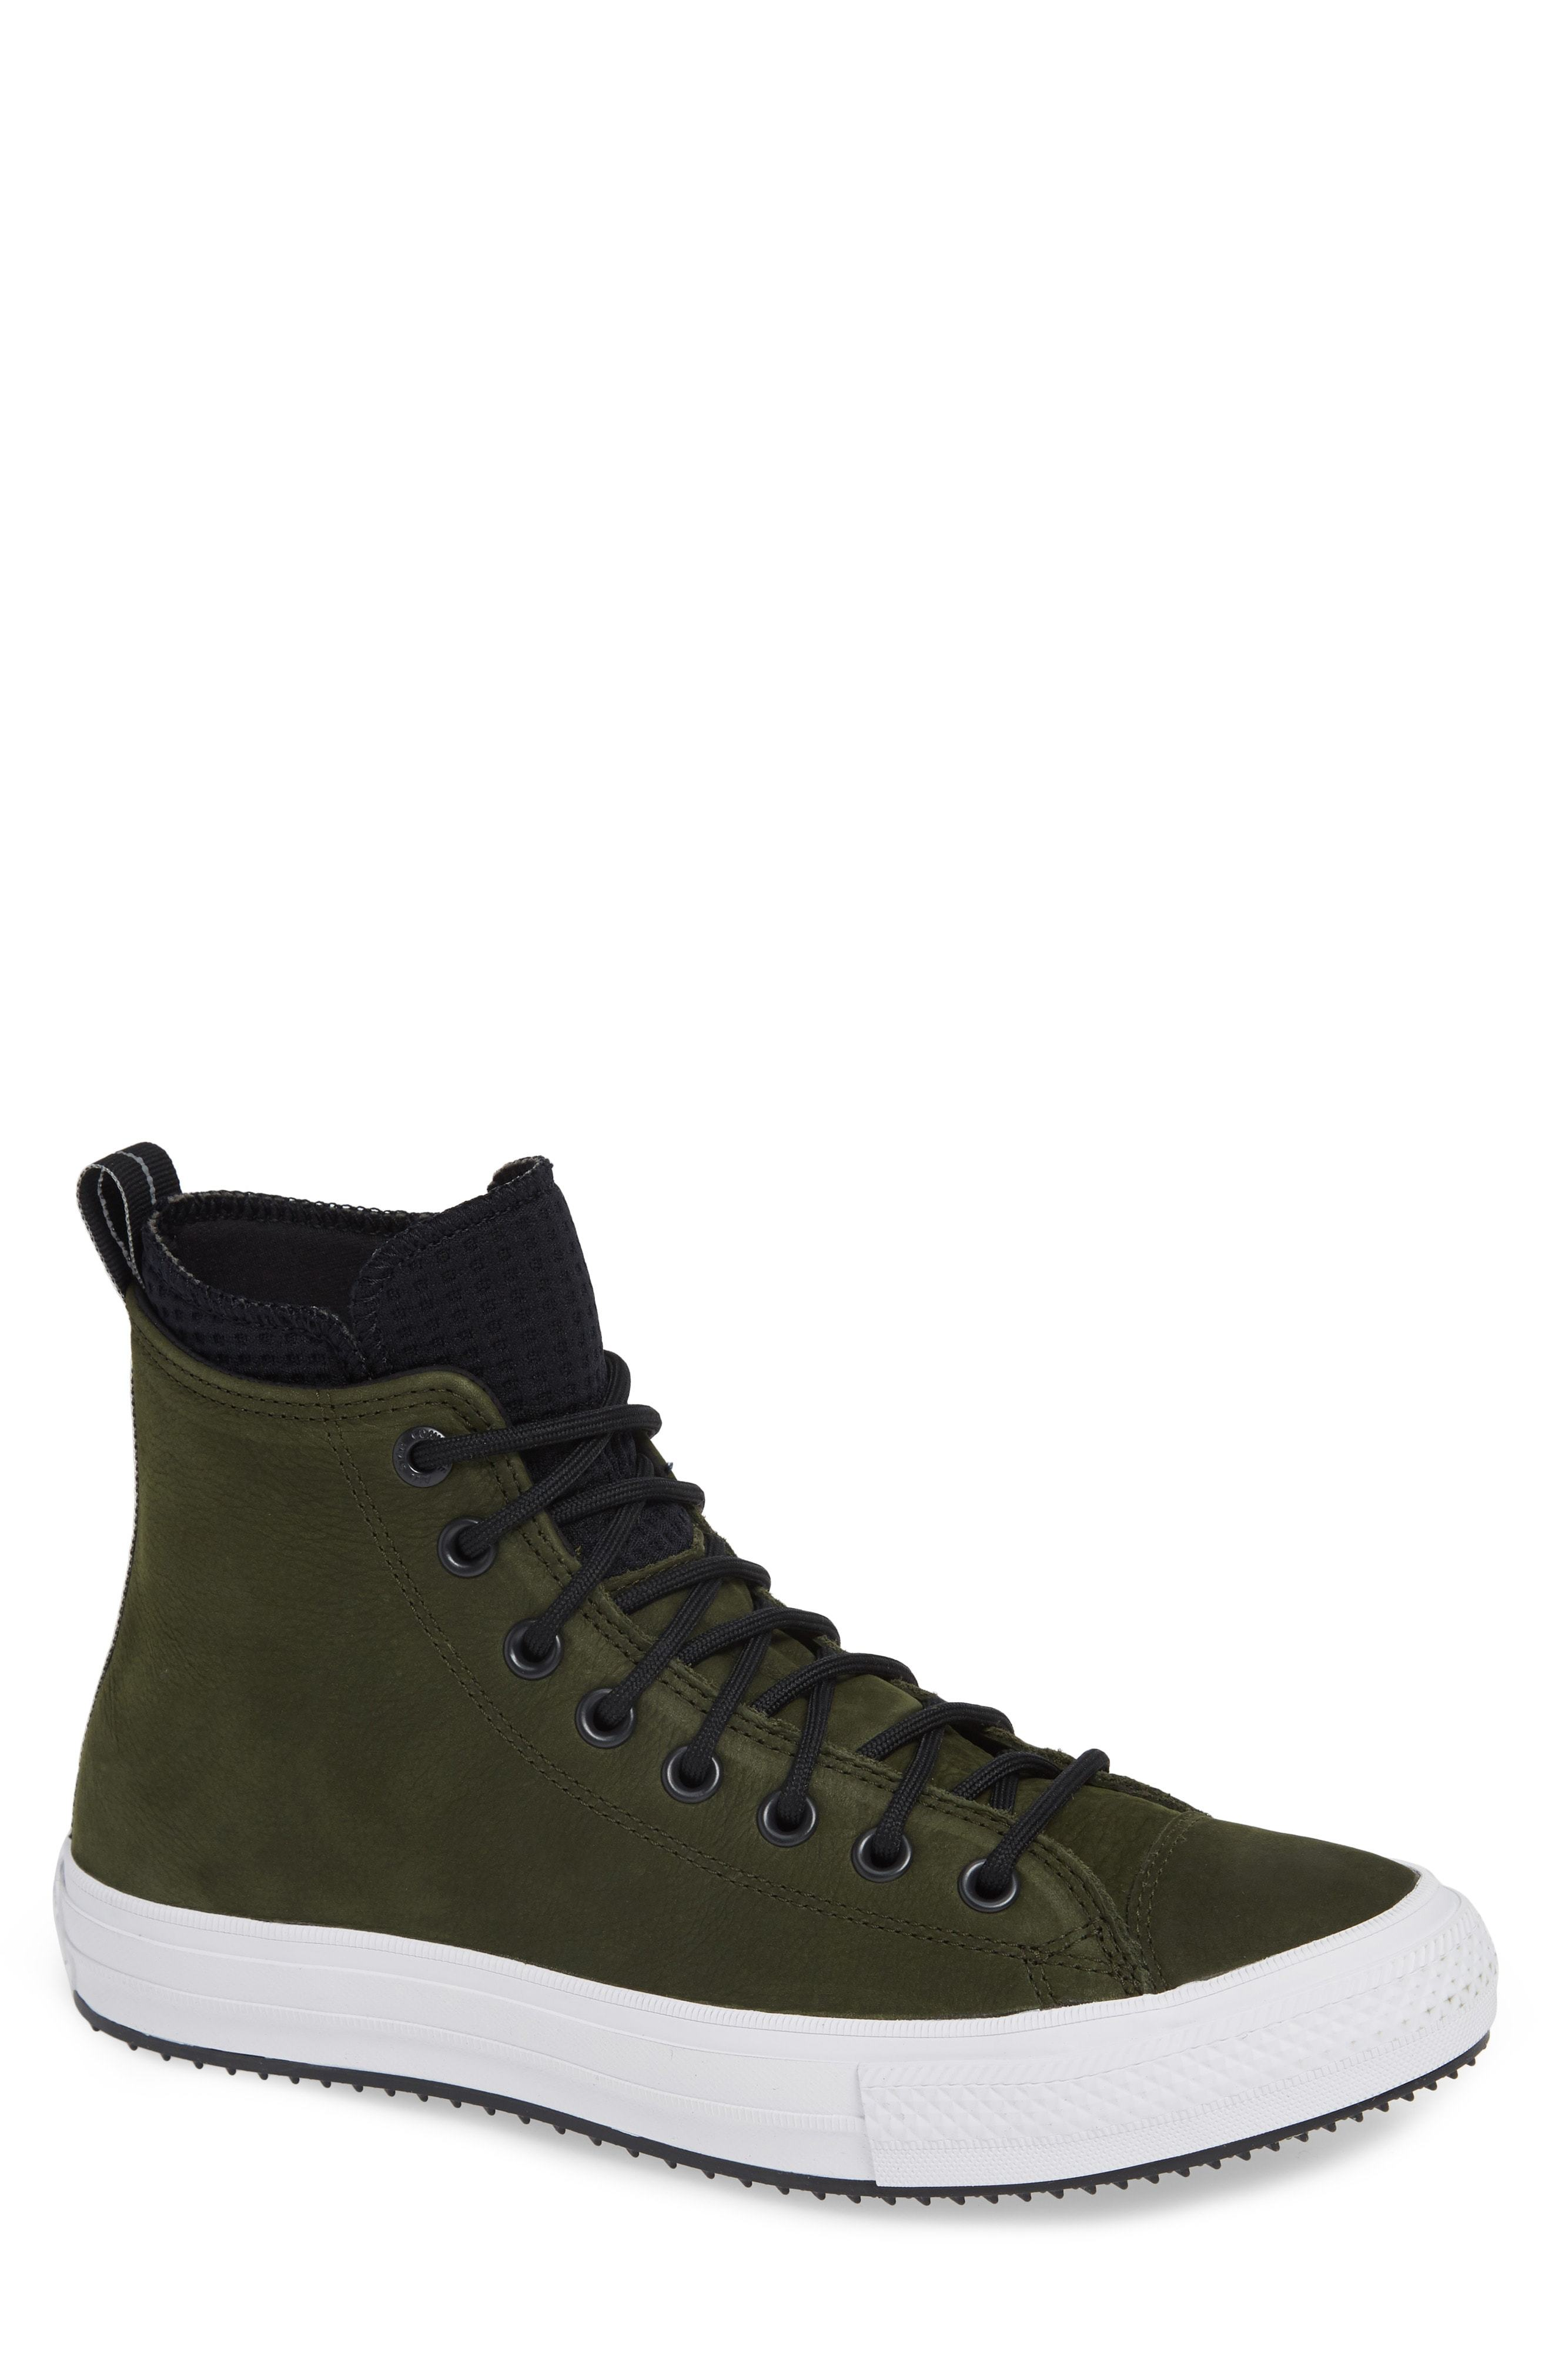 Converse Chuck Taylor Counter Climate Waterproof Sneaker, $120 ...